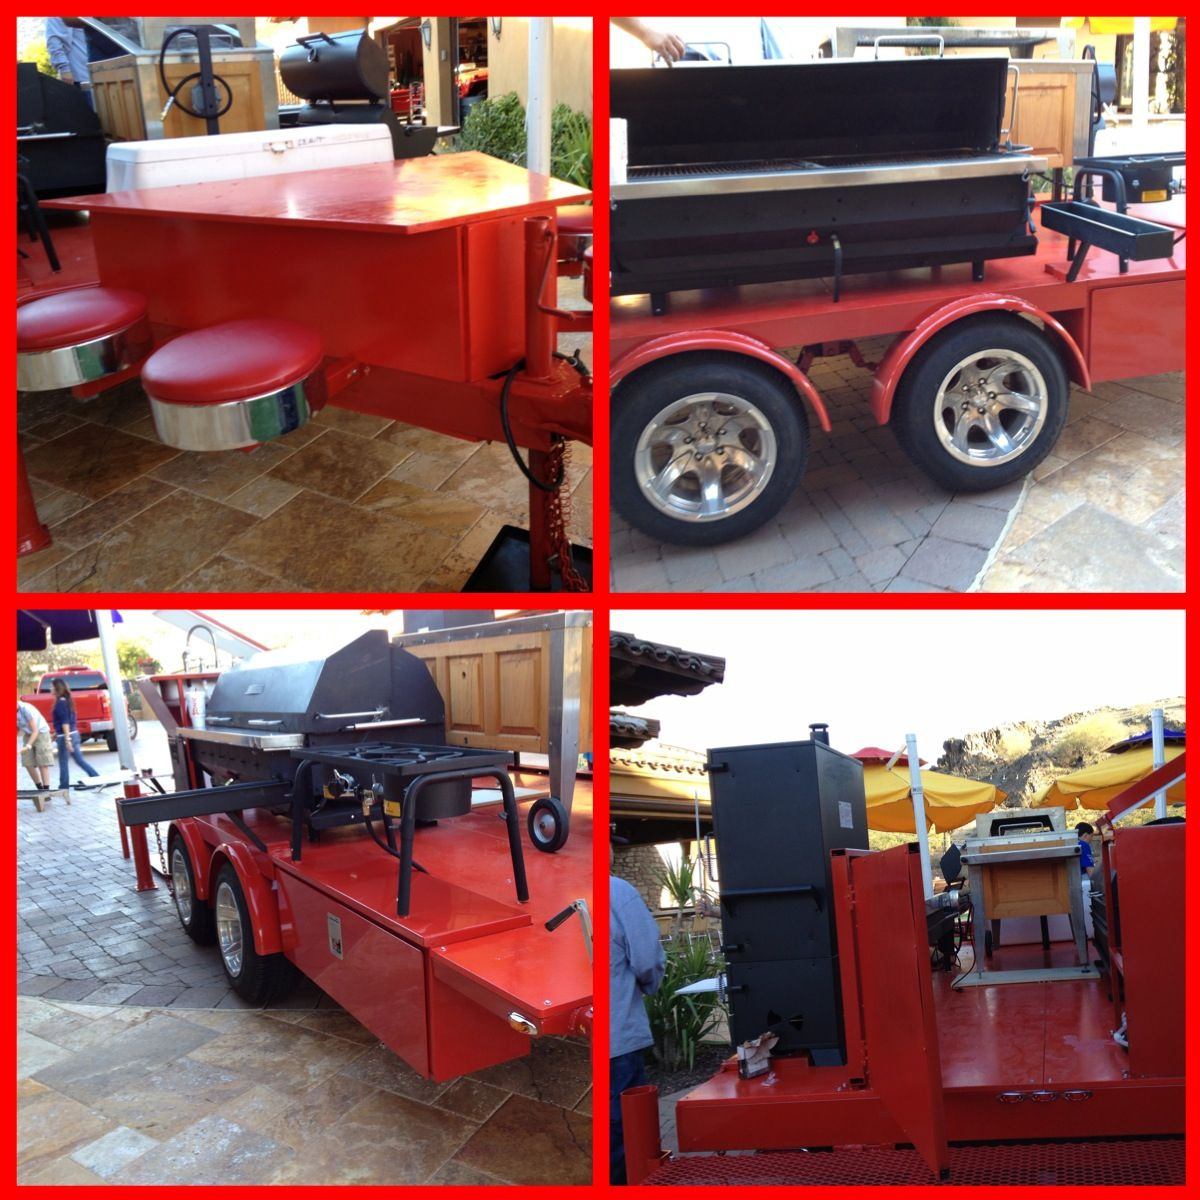 bbq trailer crafty things pinterest grills food truck and